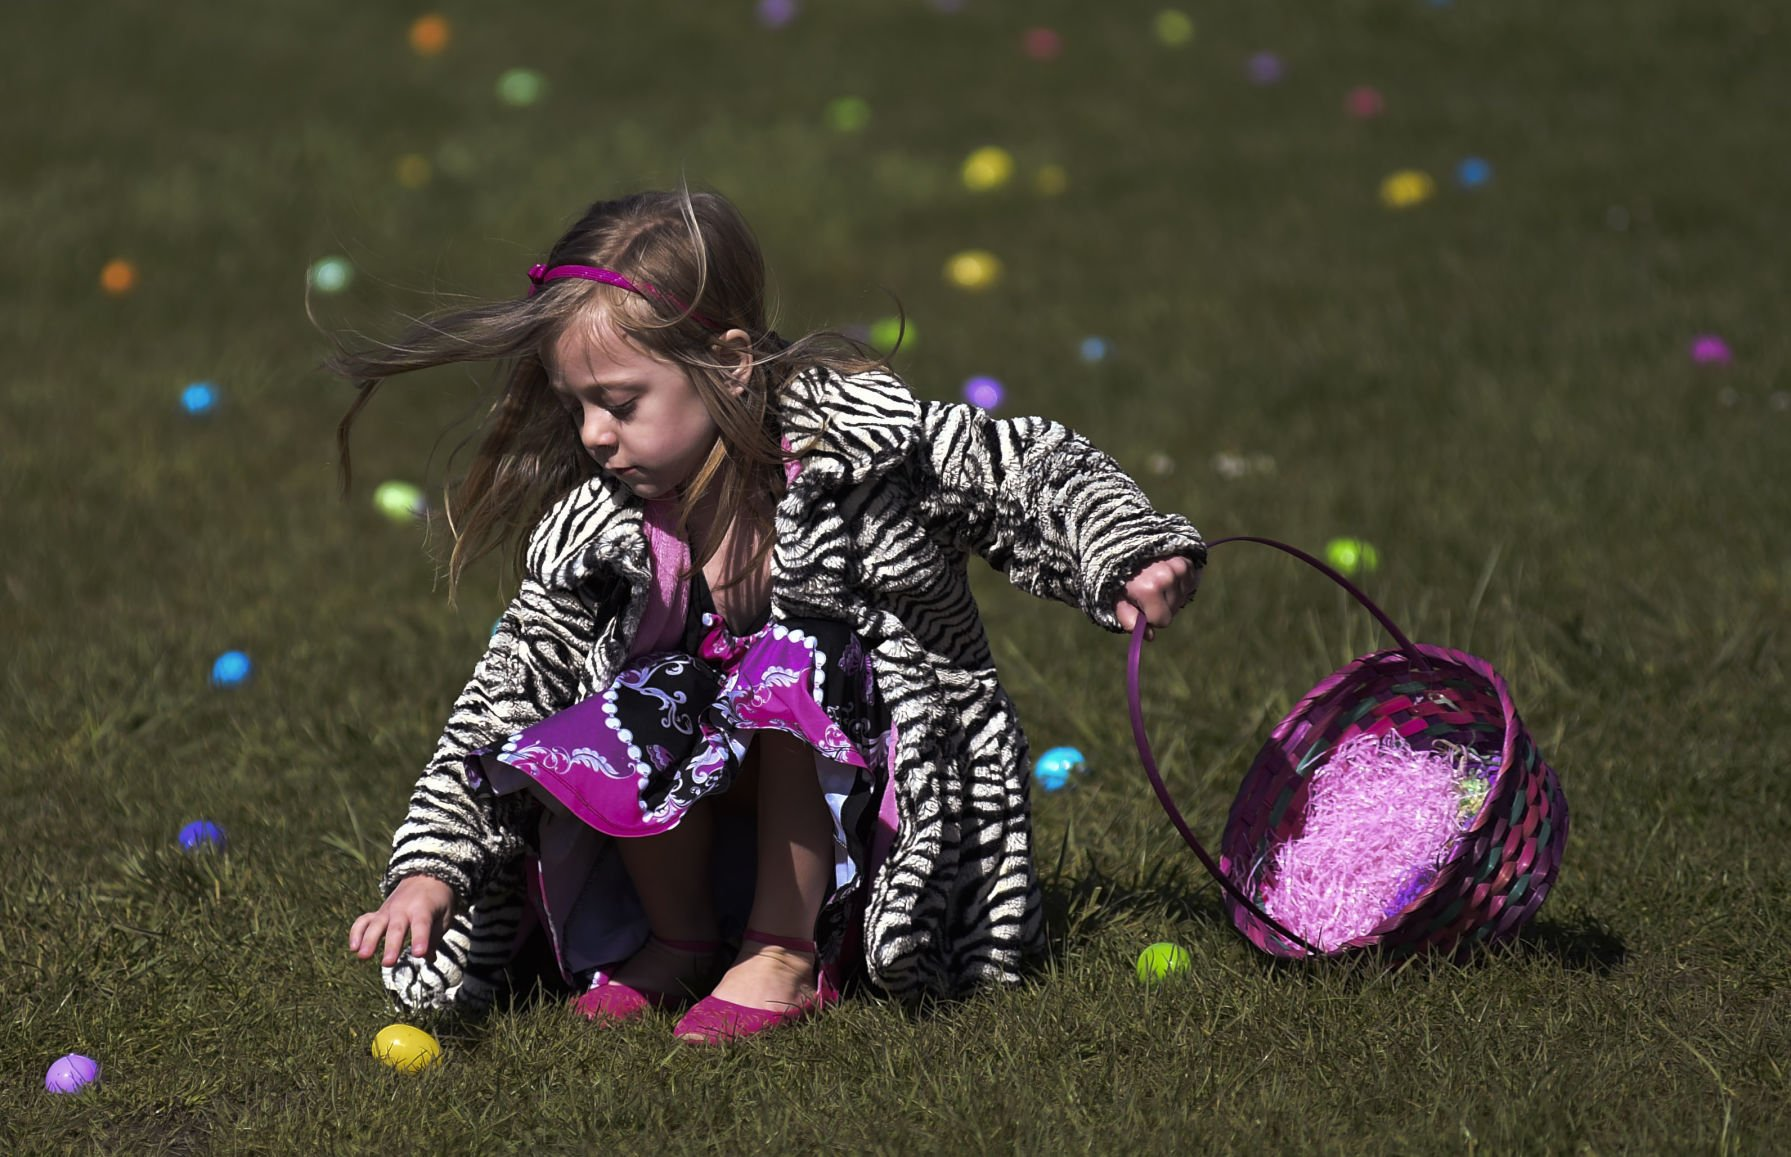 Kids, families celebrate at Easter weekend event